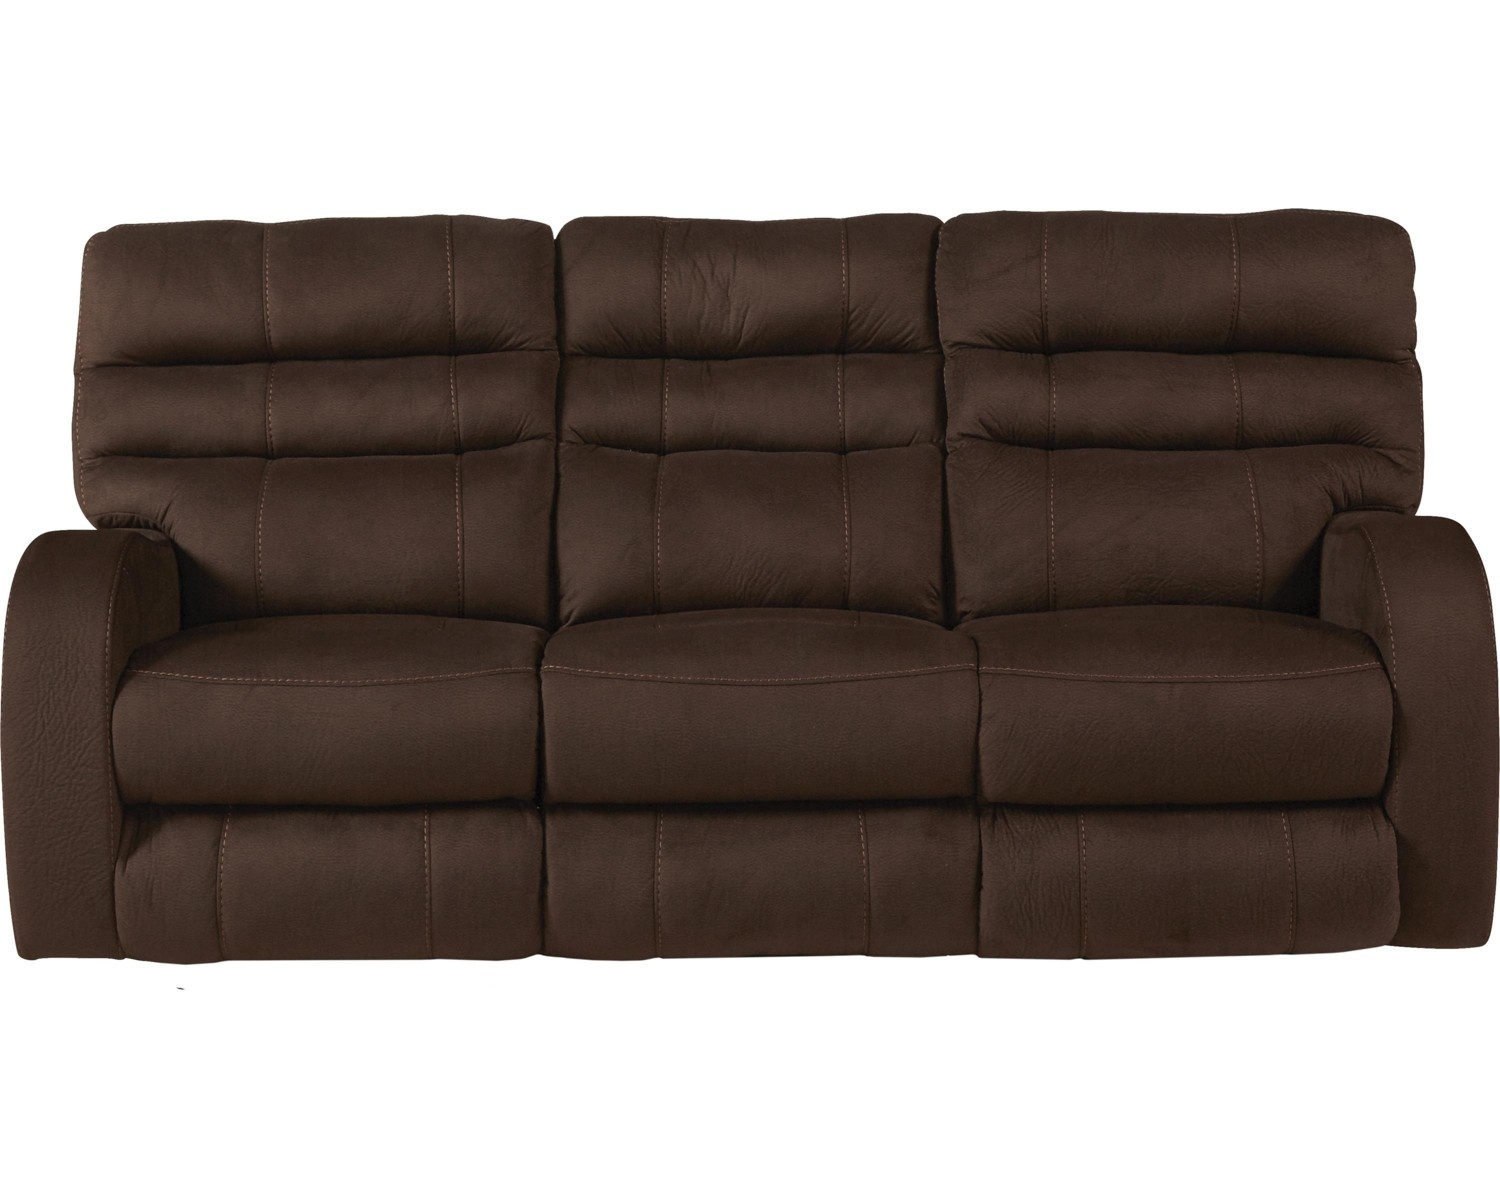 Catnapper Kelsey Power Lay Flat Reclining Living Room Collection Intended For Jackson 6 Piece Power Reclining Sectionals (View 22 of 25)